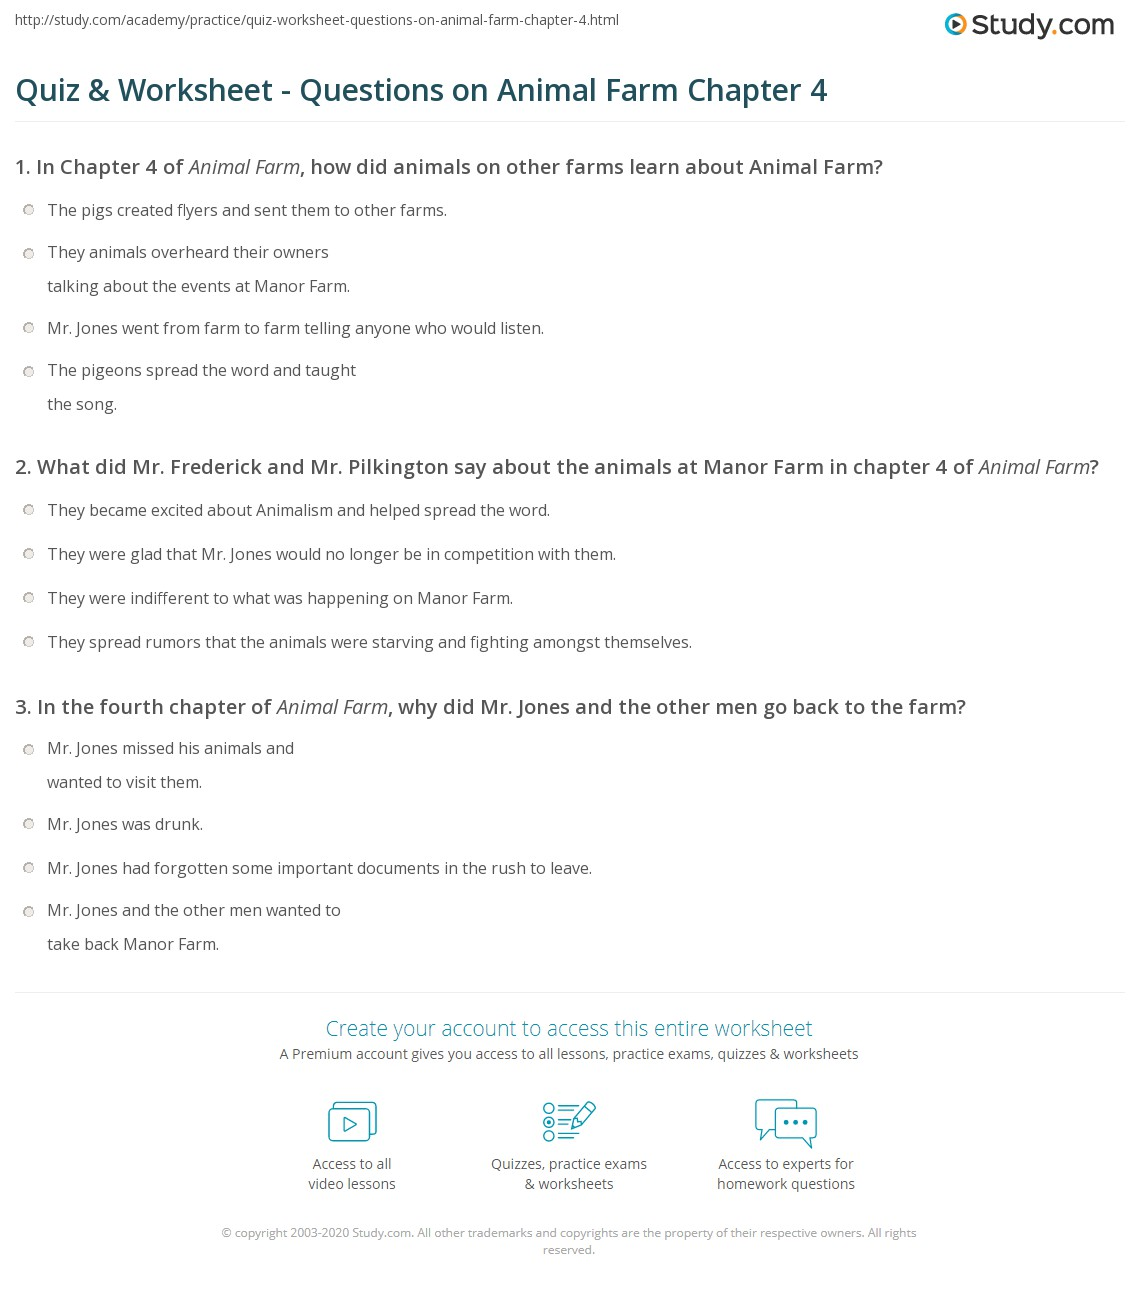 questions and answers for chapter 4